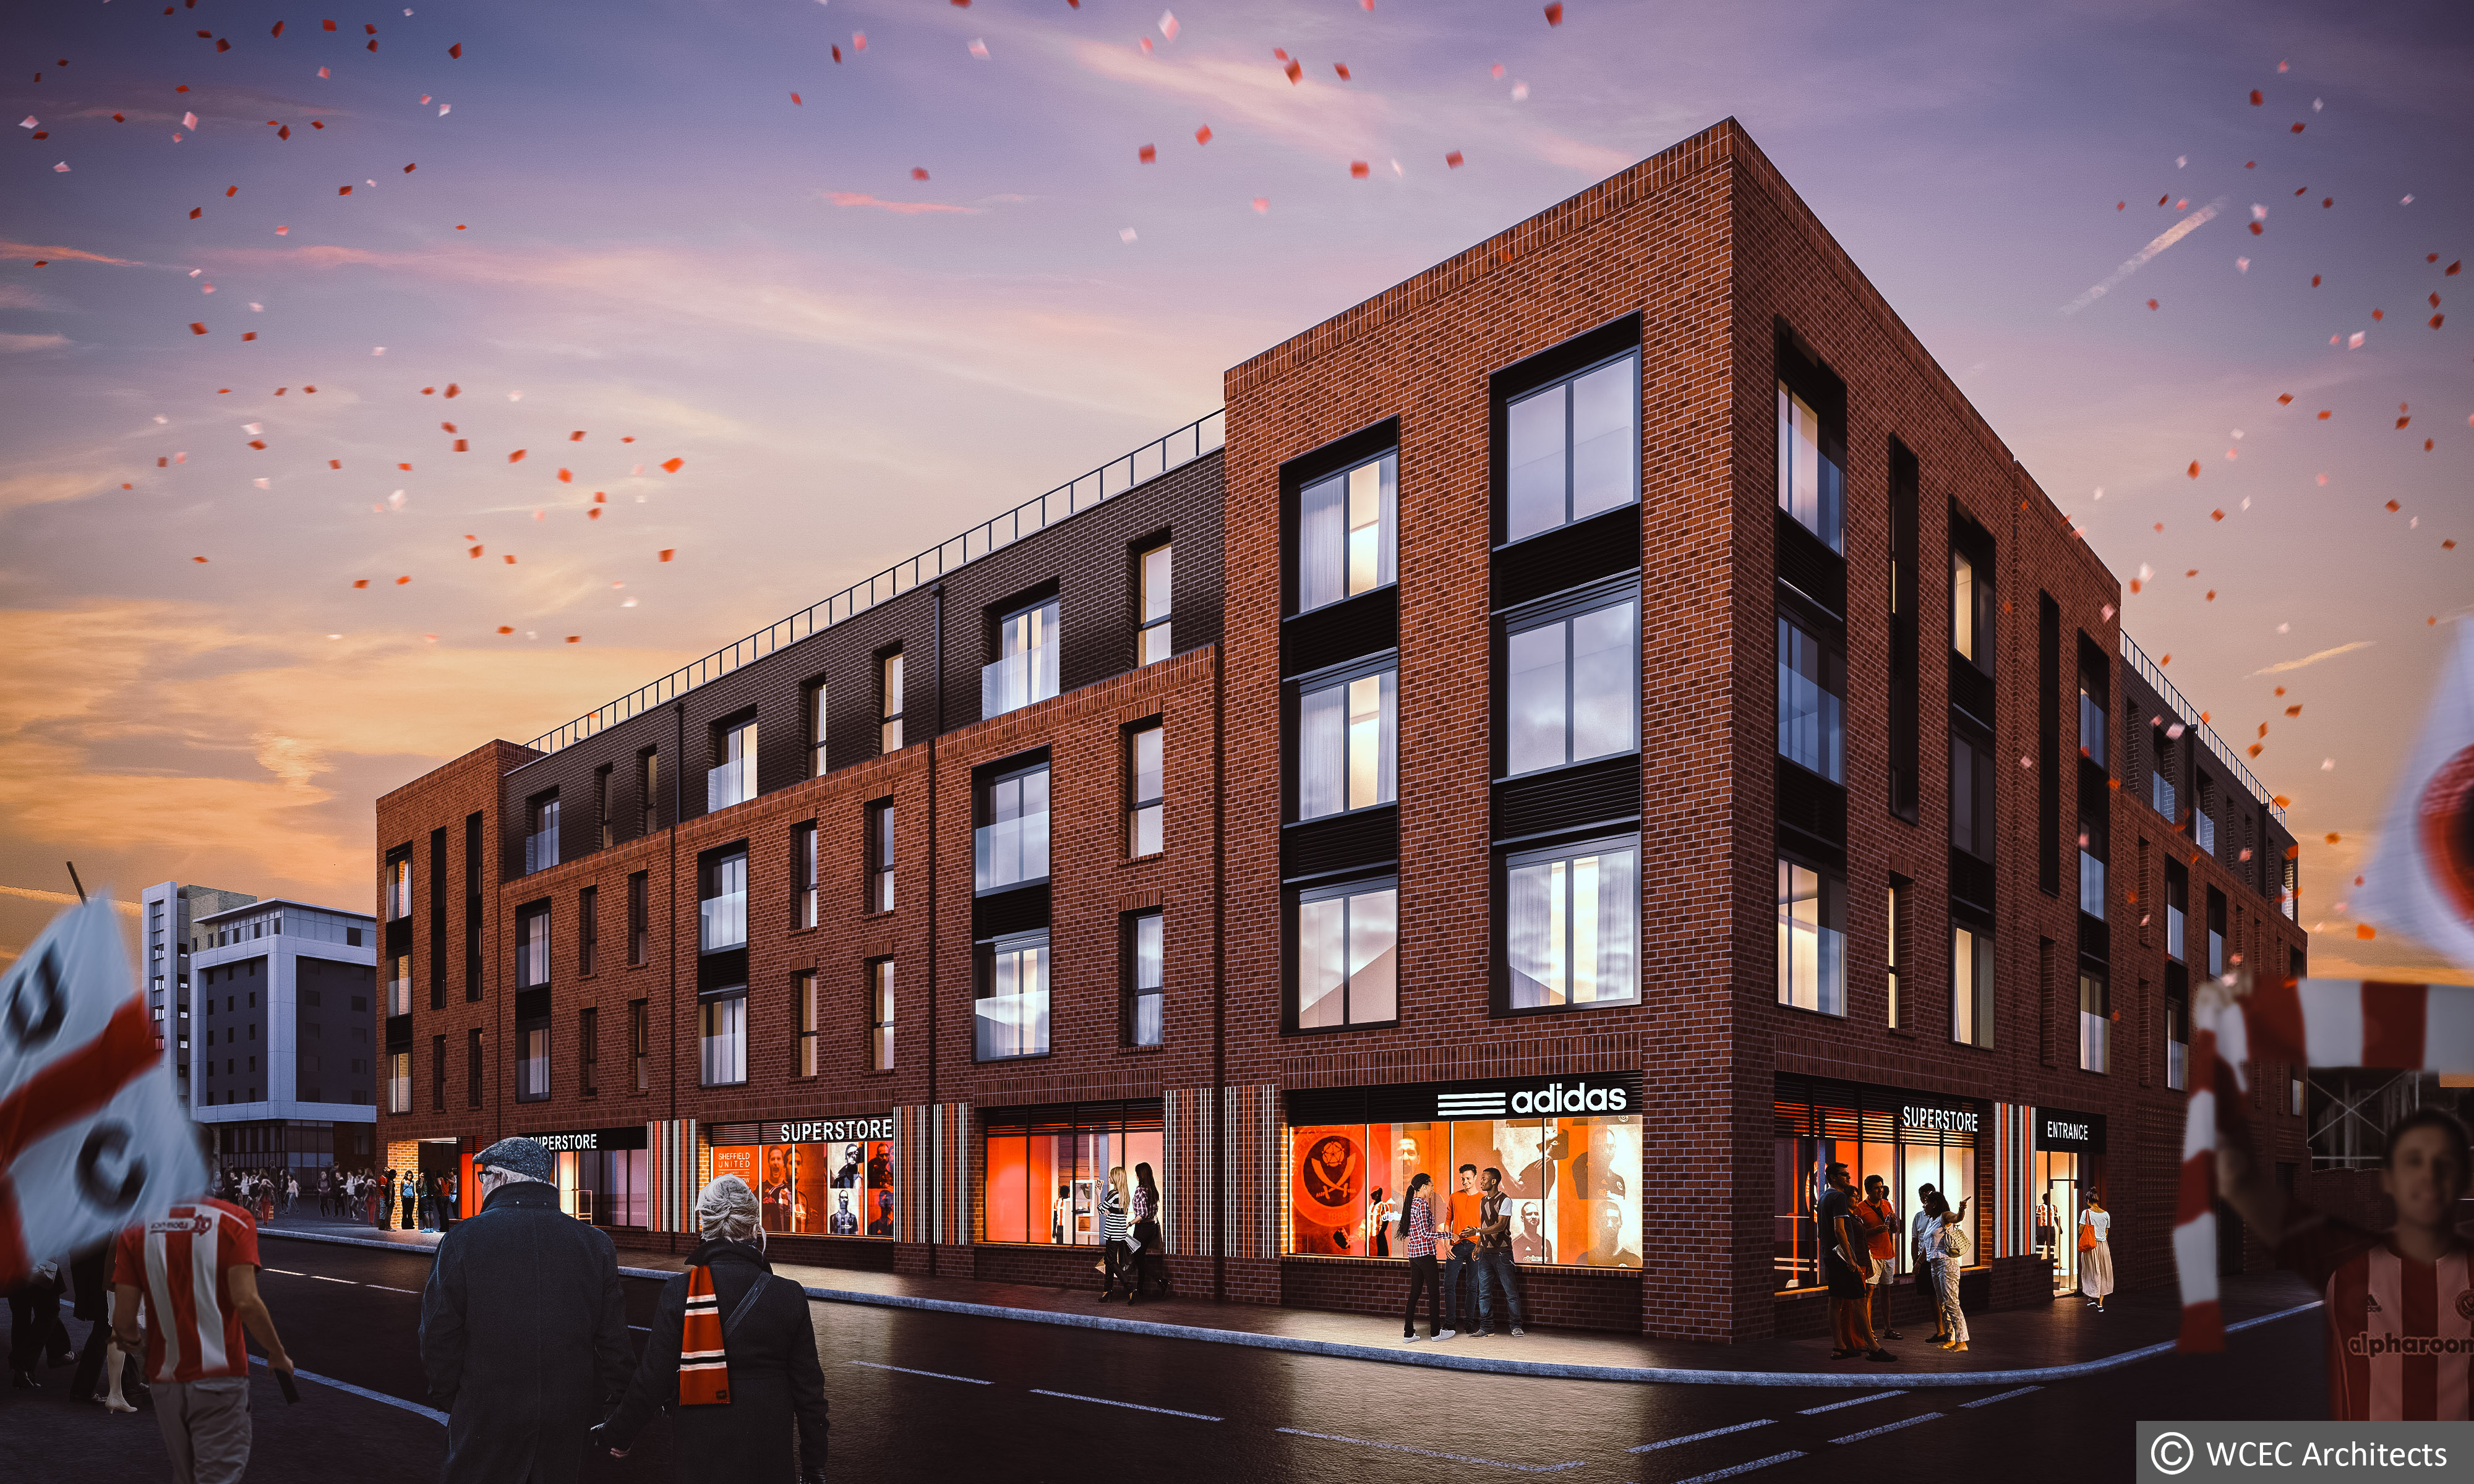 Sheffield United unveils plans to develop renowned Bramall Lane